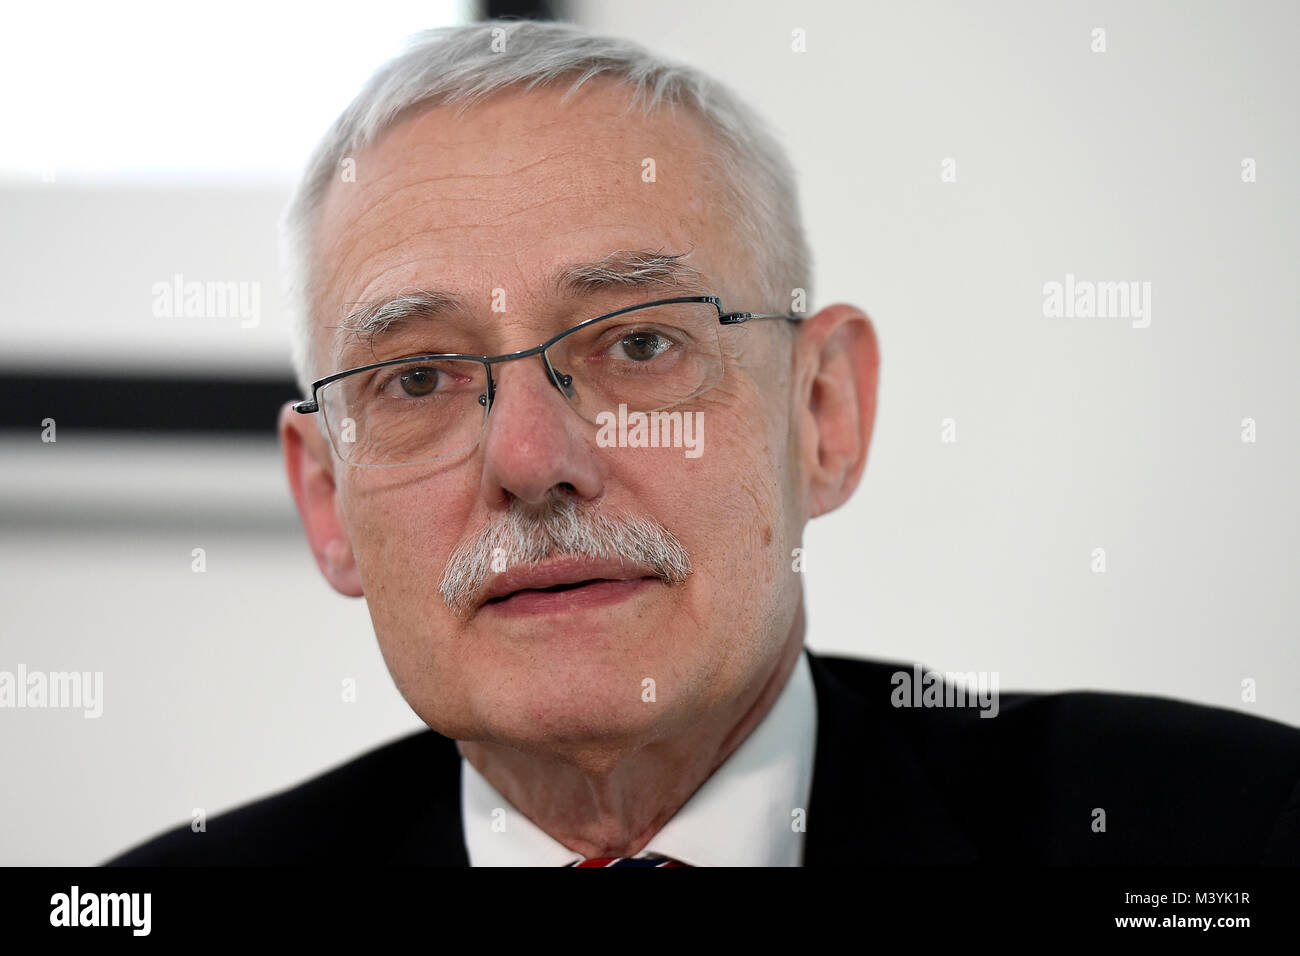 Prague, Czech Republic. 13th Feb, 2018. Dean Michael Valasek attends the press conference on cooperation in developing - Stock Image